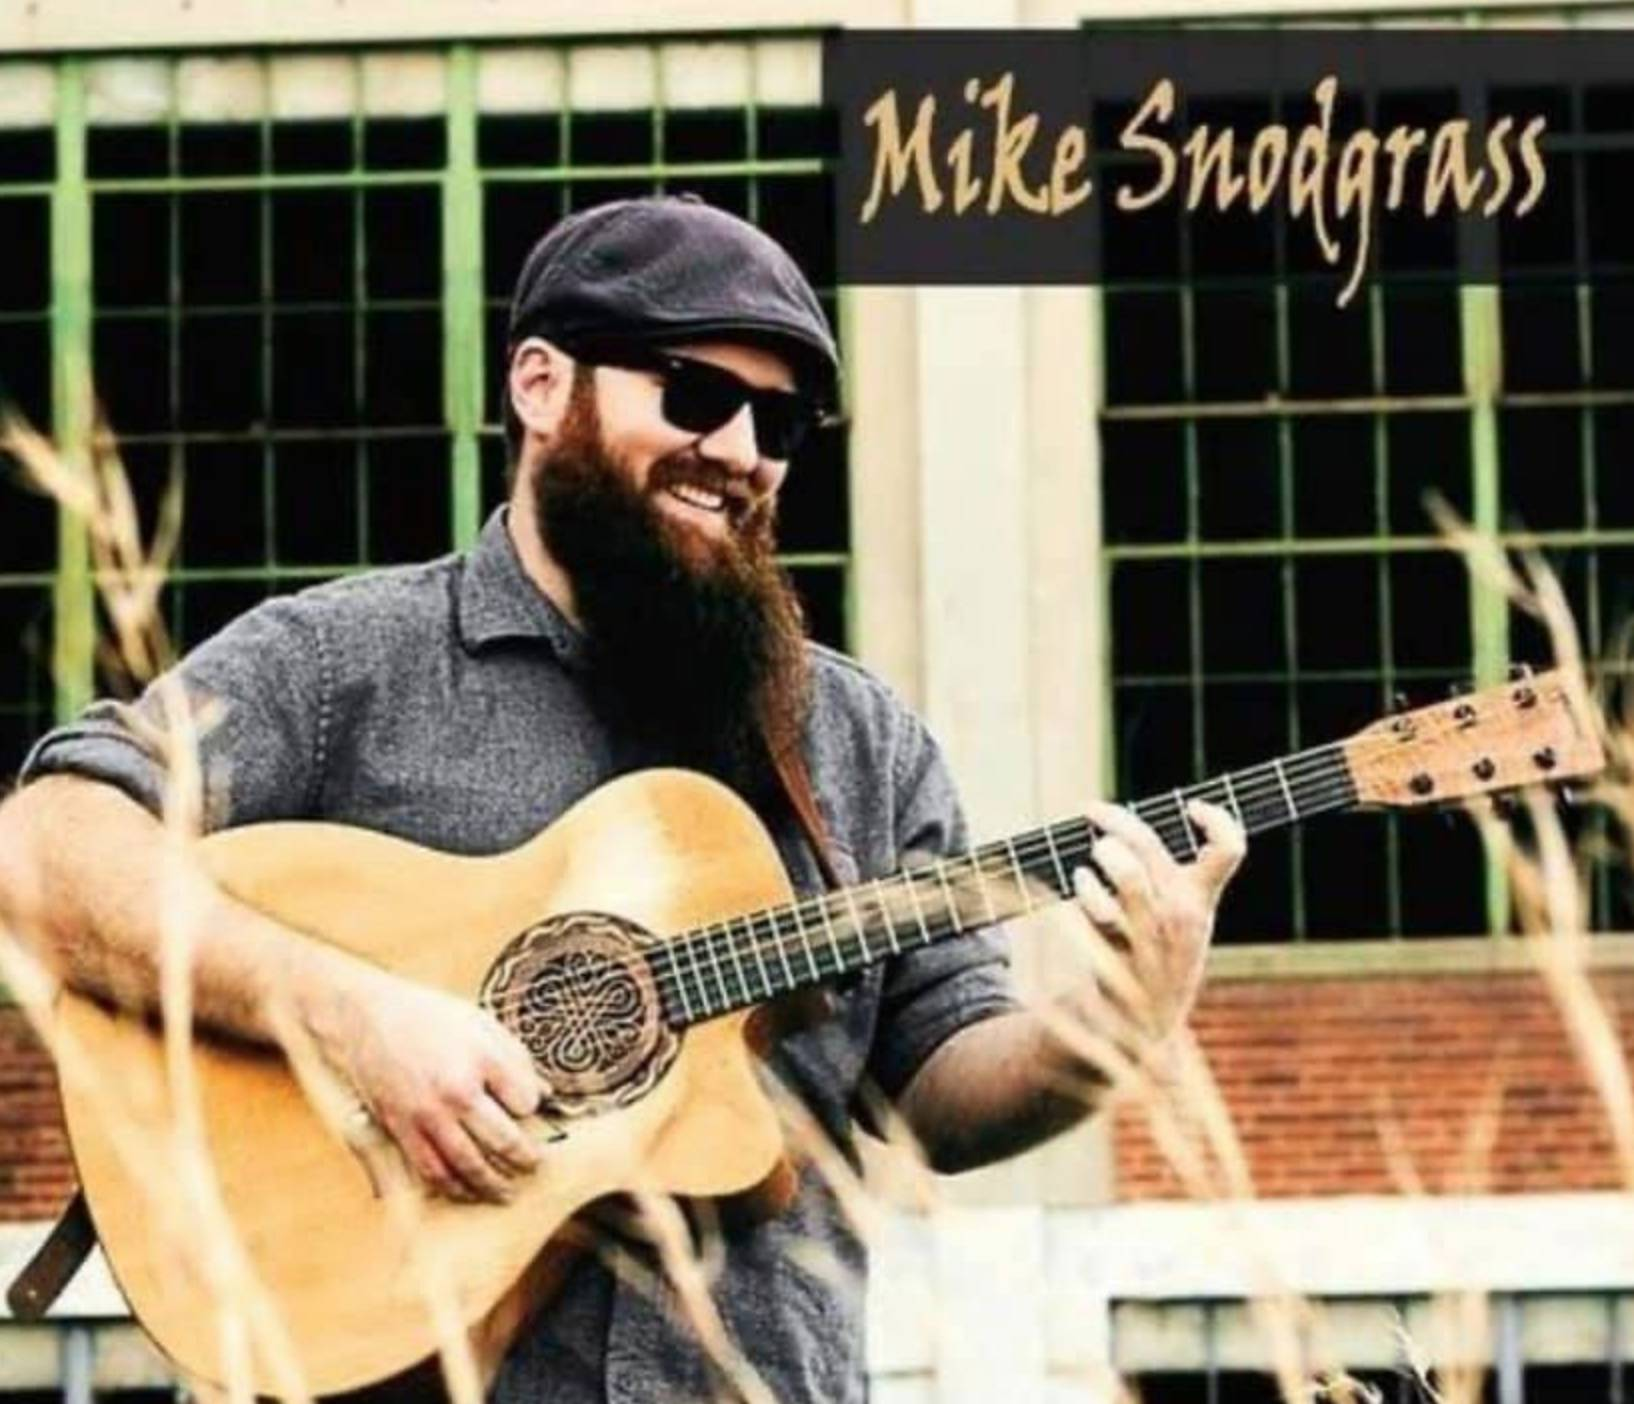 Live Music w/ Mike Snodgrass